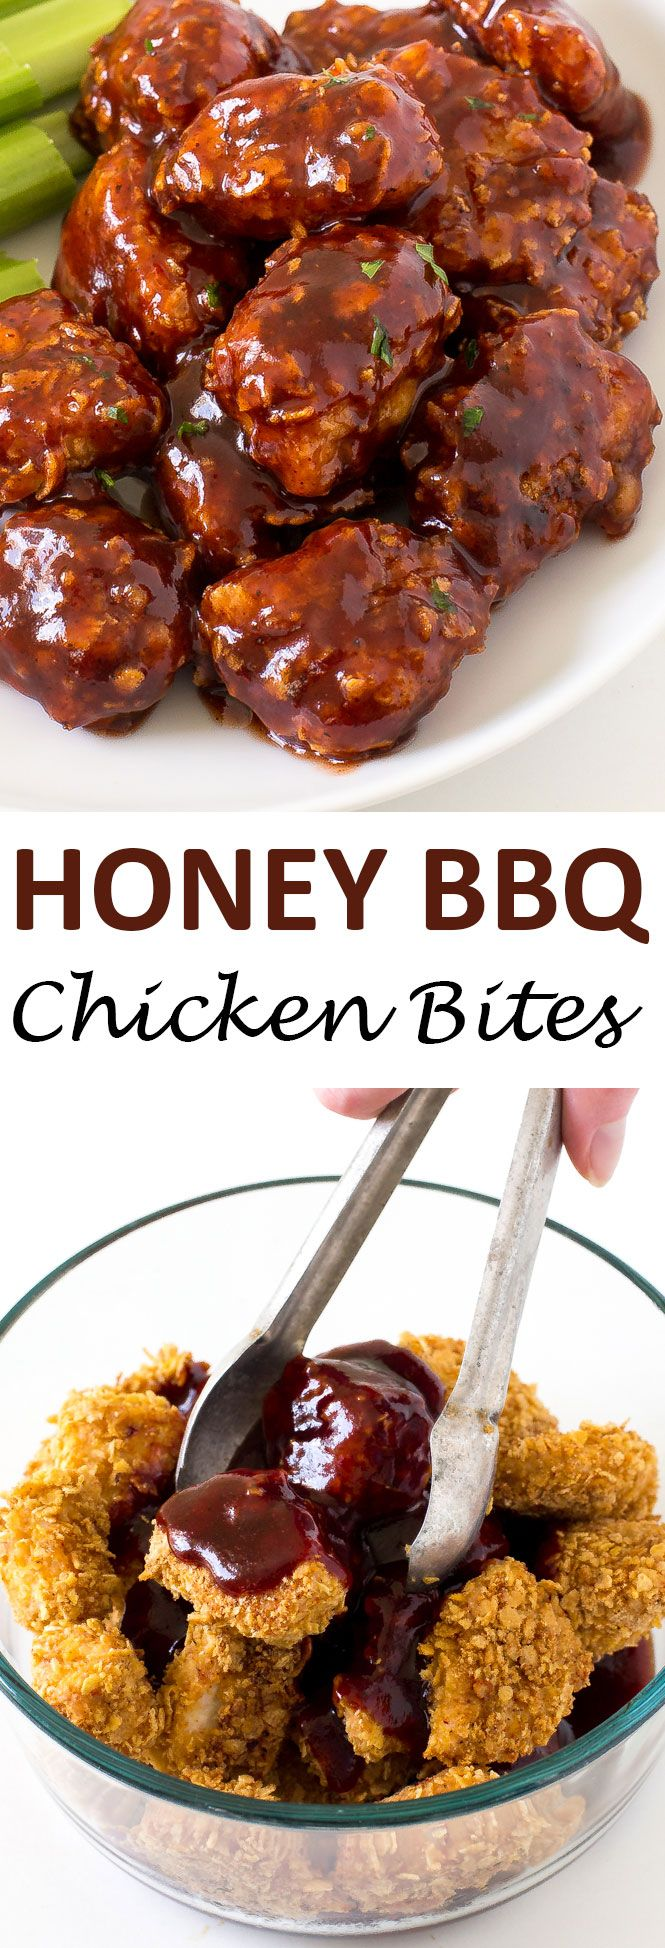 Baked Honey Barbecue Chicken Bites coated in crunchy cornflakes and tossed with a sweet Honey Barbecue Sauce! Perfect as an appetizer or for dinner!   chefsavvy.com #recipe #honey #barbecue #chicken #bites #dinner #cornflakes